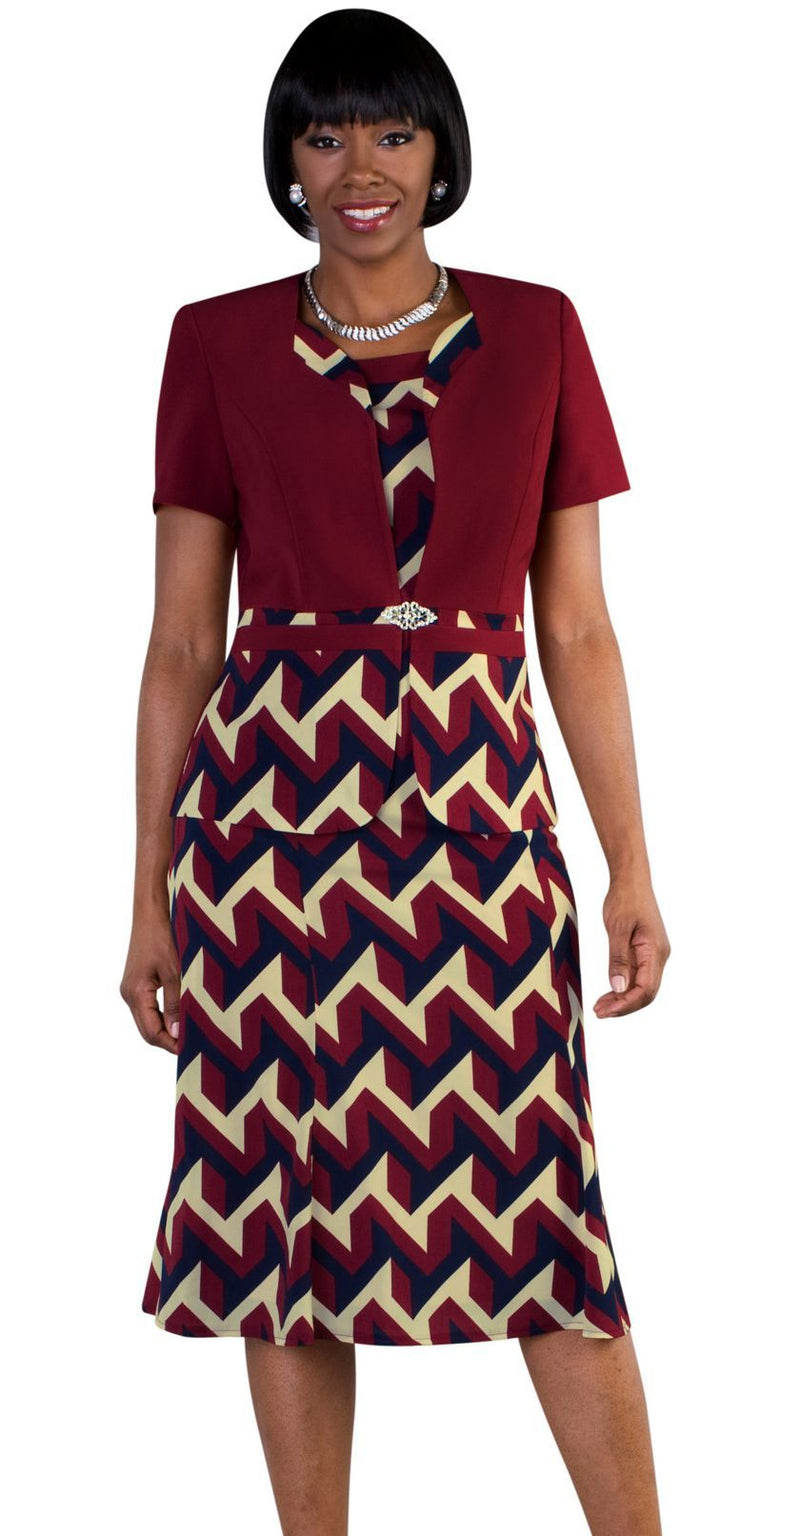 Tally Taylor Dress 9447-Burgundy/Multi - Church Suits For Less